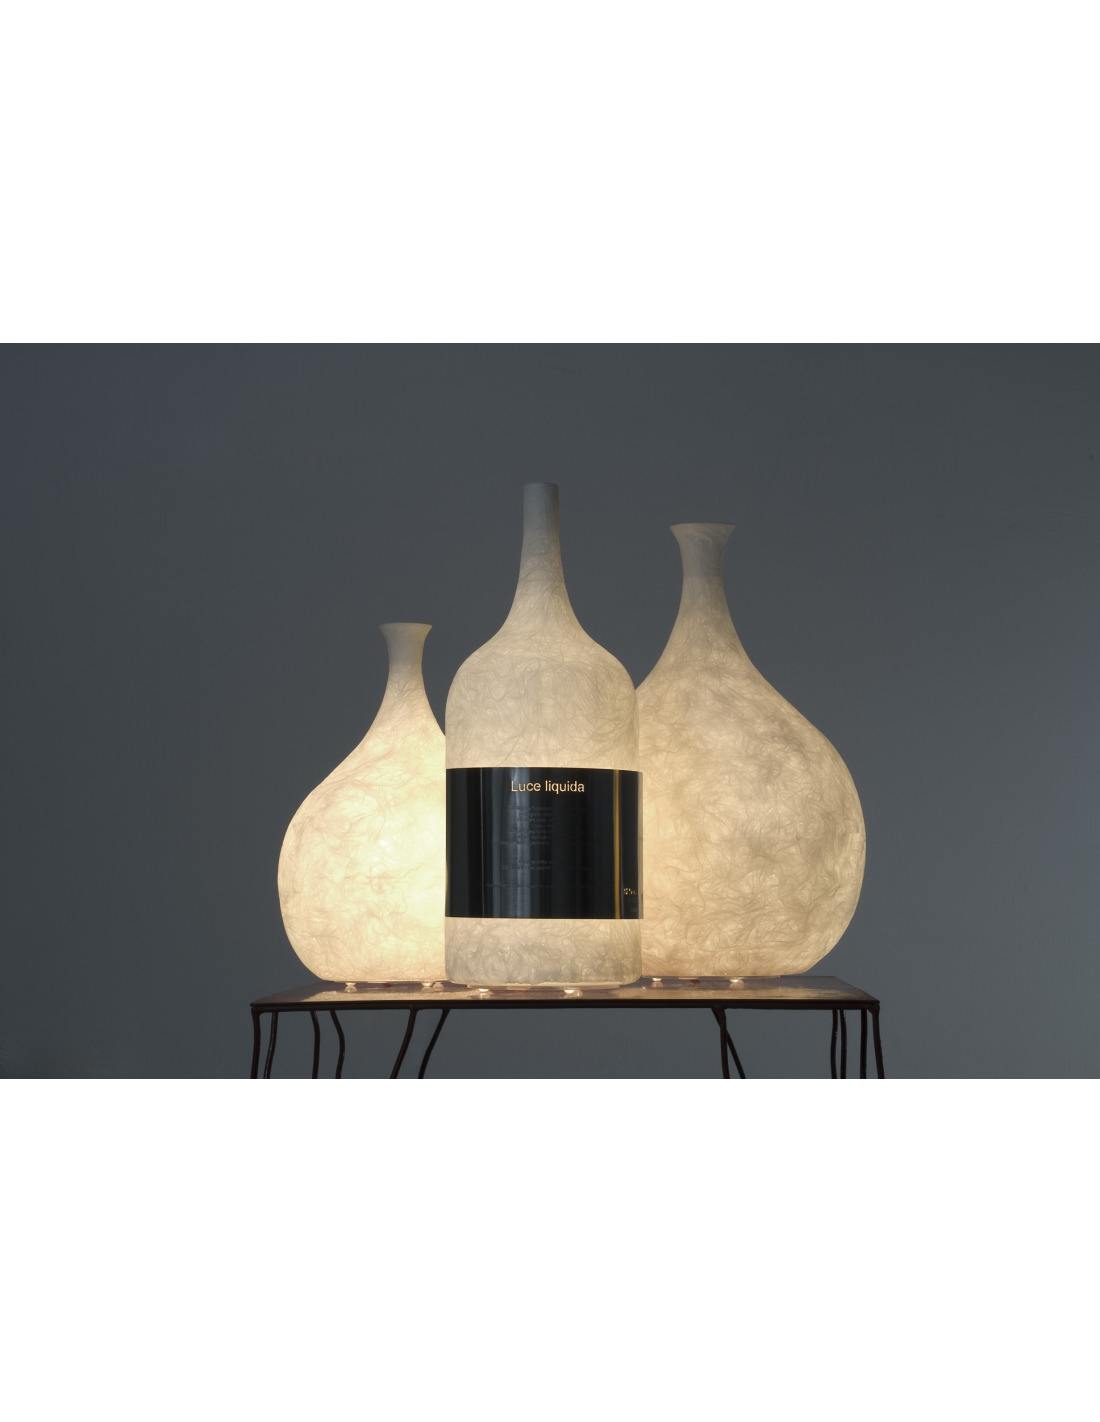 Lampe poser luce liquida 2 au design original et moderne - Set de table originaux ...